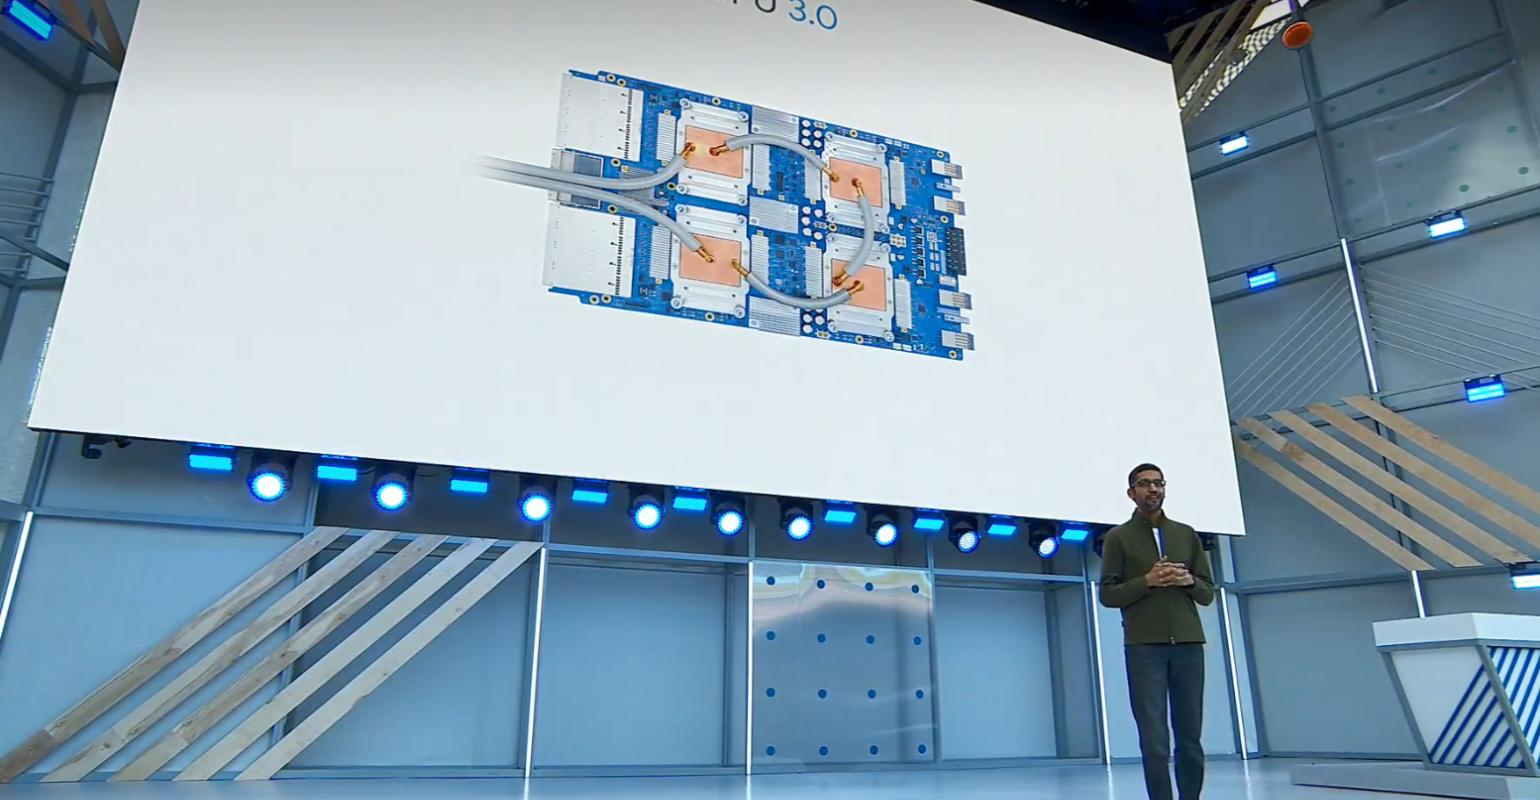 Google Brings Liquid Cooling to Data Centers to Cool Latest